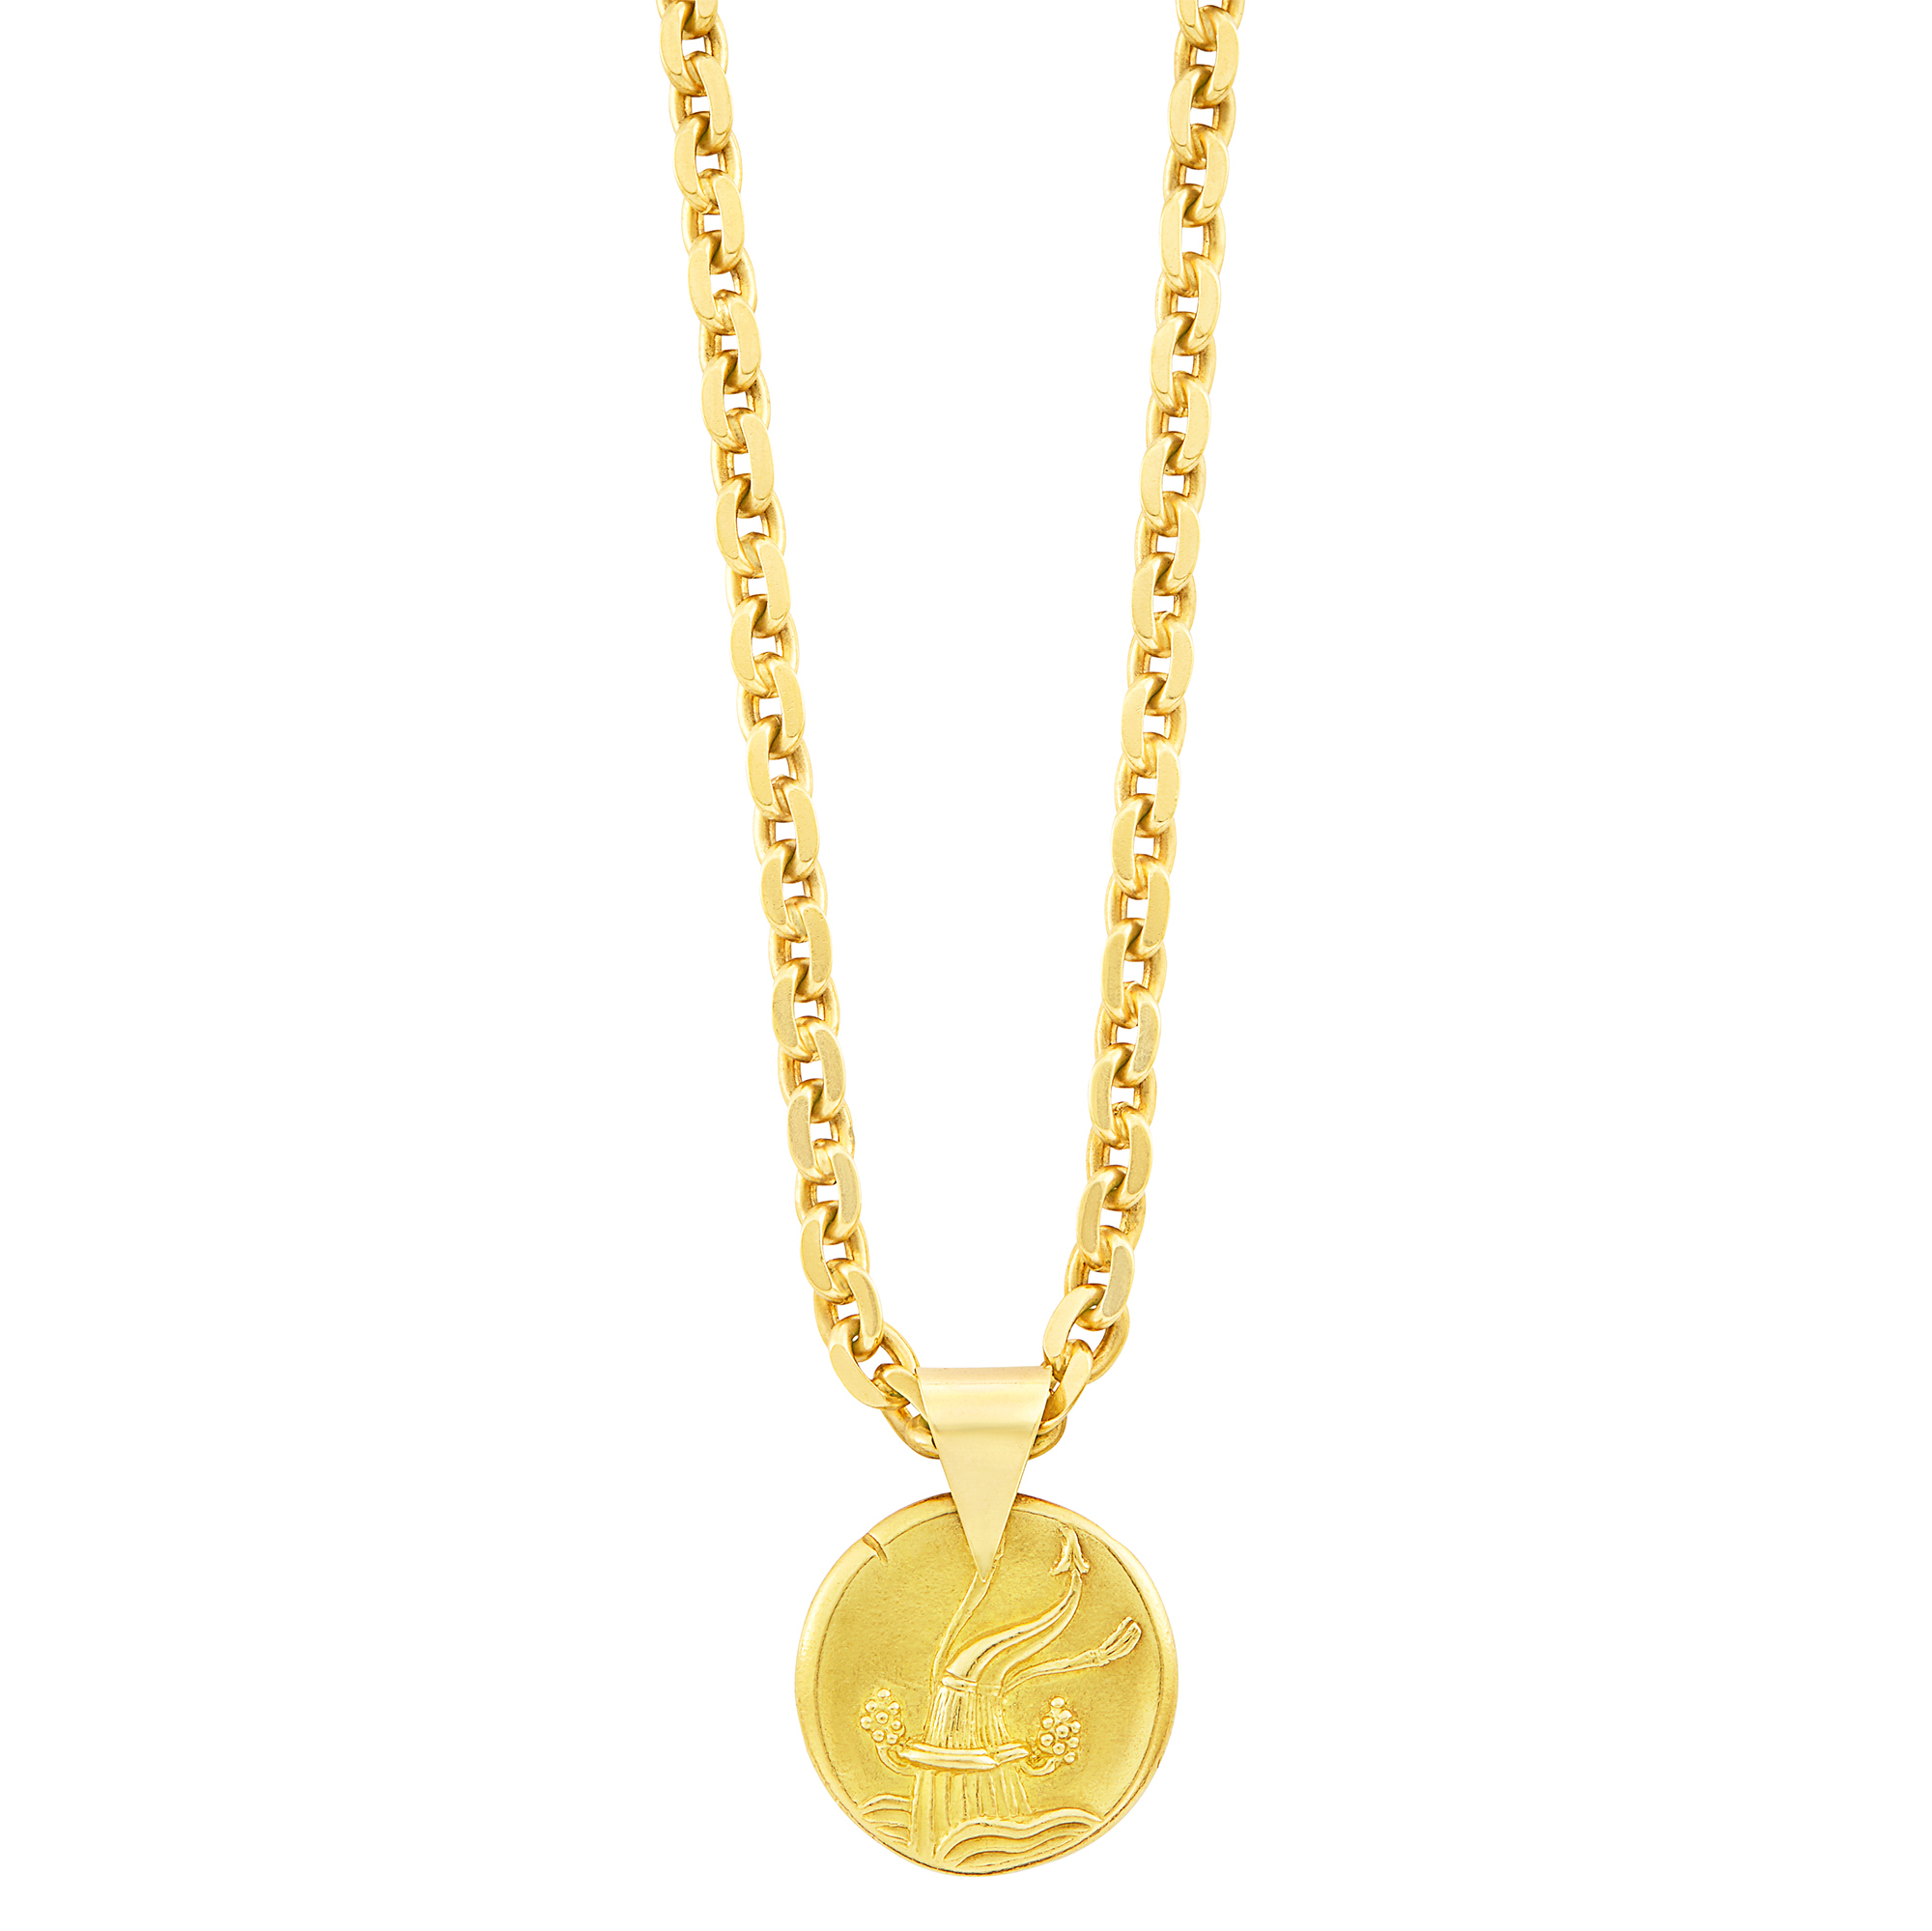 Lot image - Gold Aquarius Pendant, Van Cleef & Arpels, France, with Gold Chain Necklace